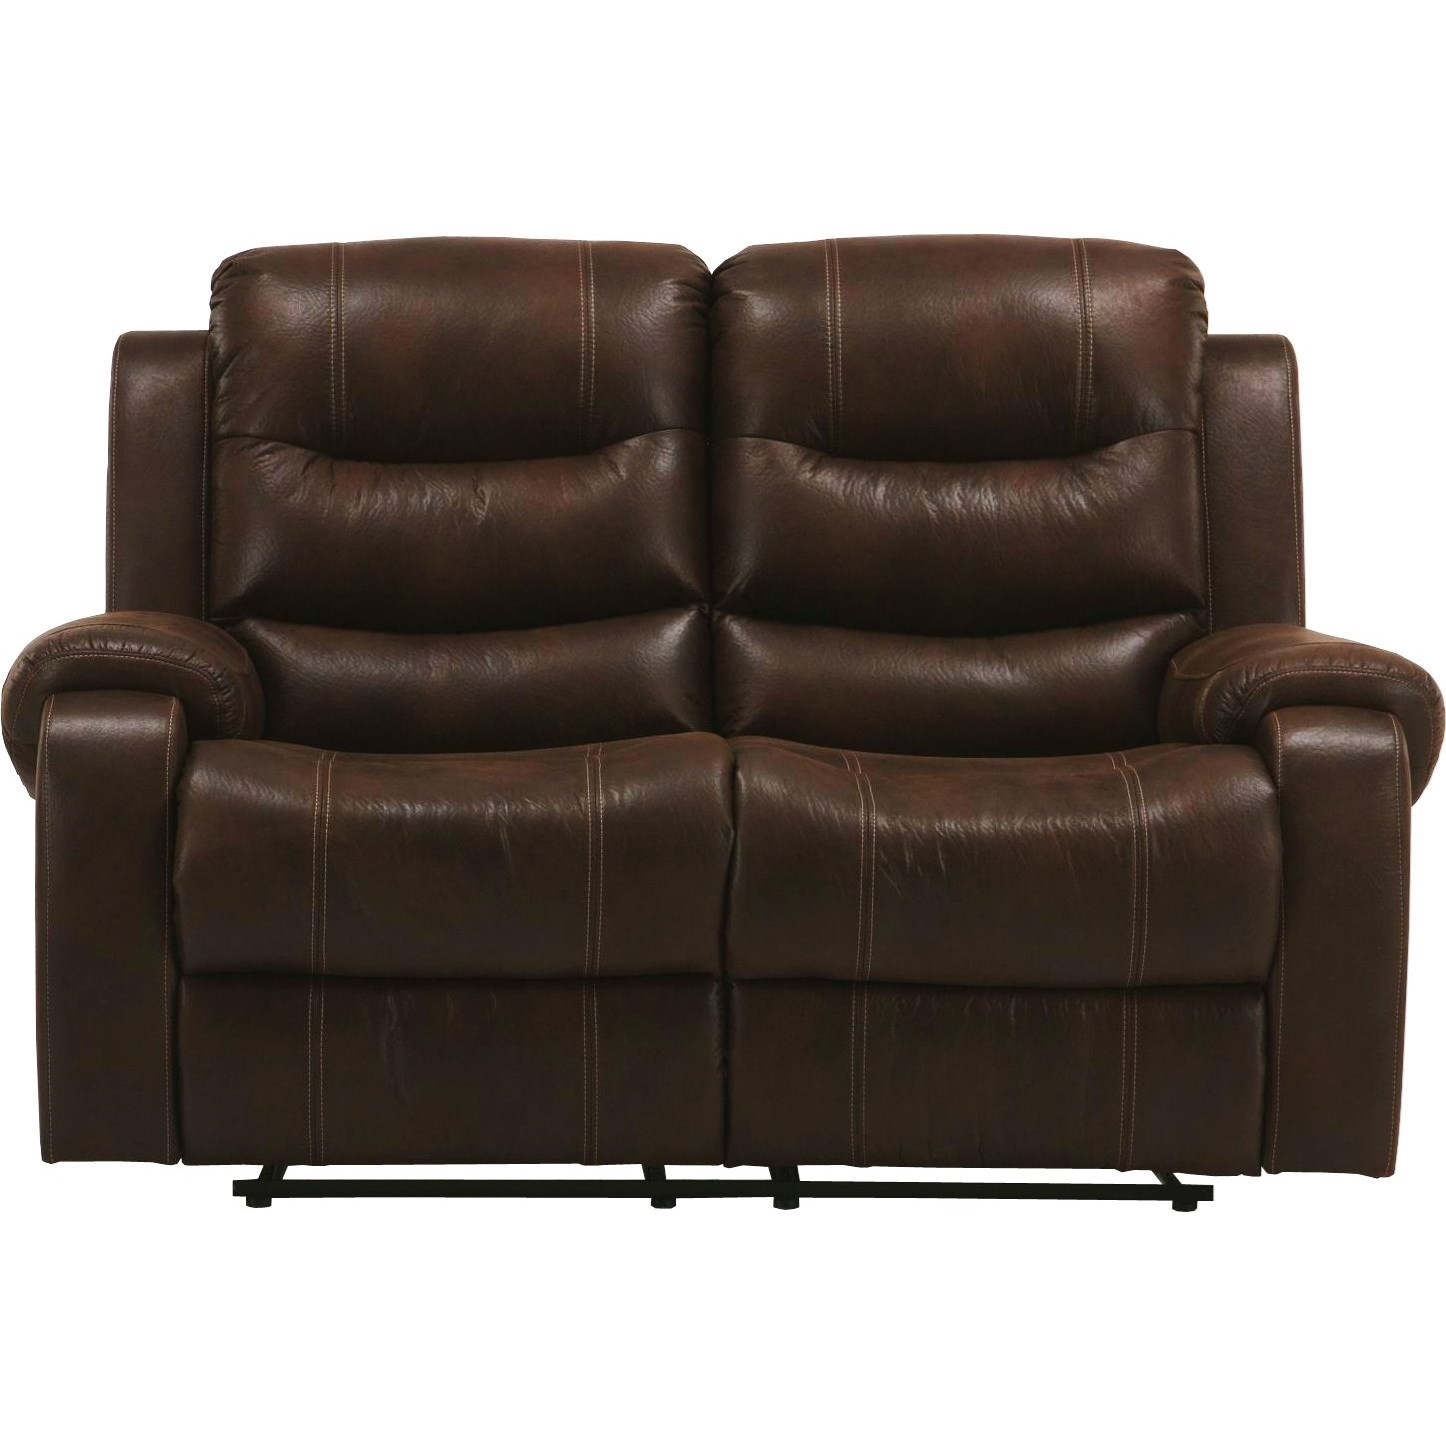 Parker Living Brahms Reclining Loveseat - Item Number: MBRA-822-CW